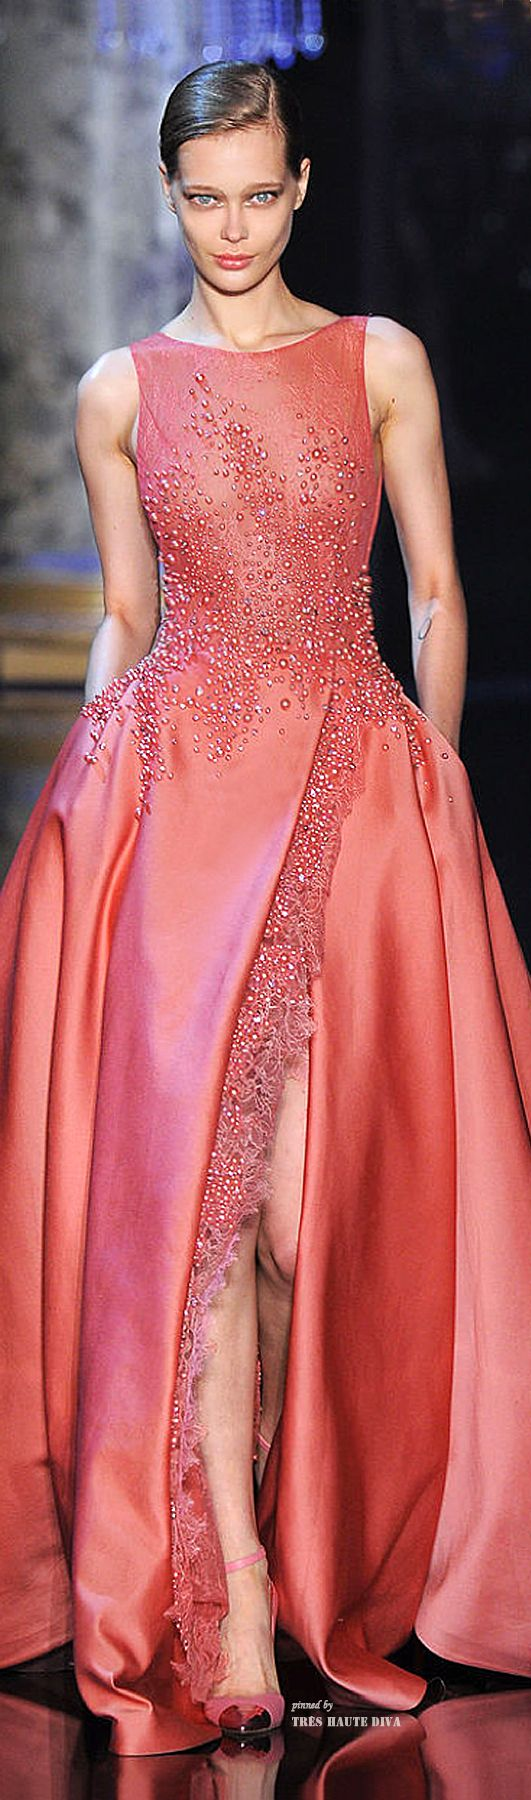 196 best Glorious Glamour images on Pinterest | Party outfits, Gown ...